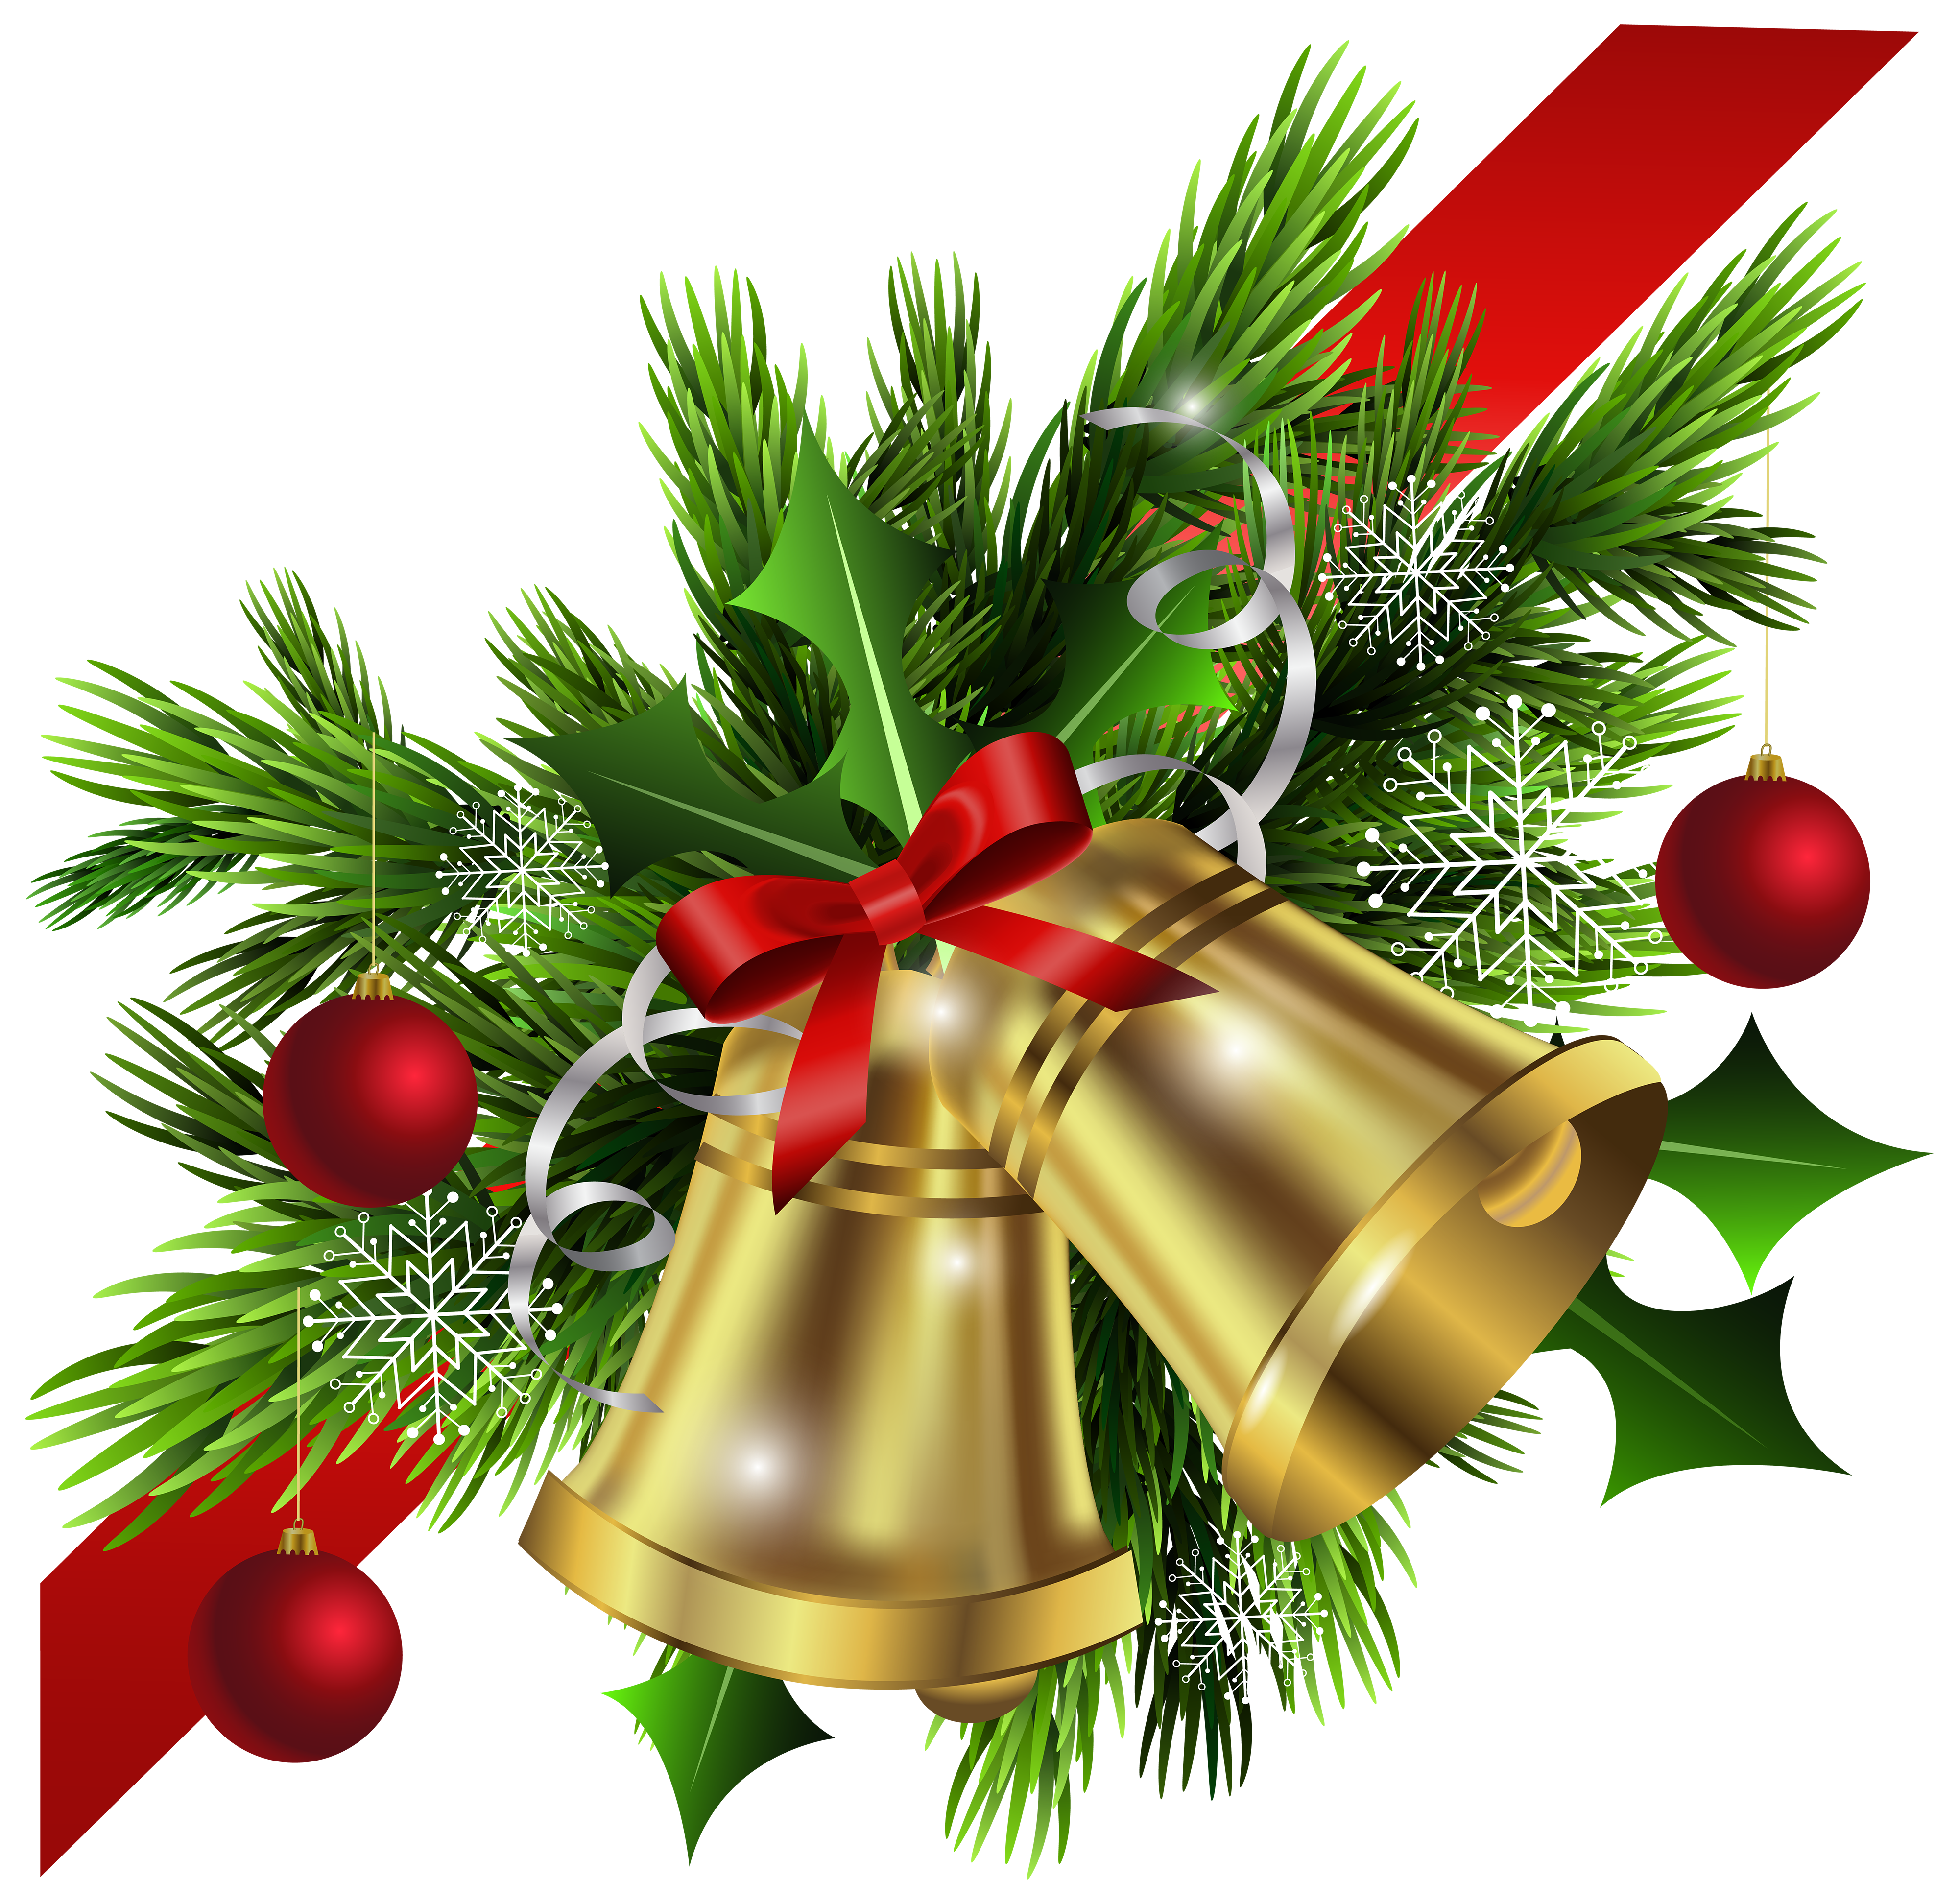 jpg royalty free stock Red bow and bells. Christmas clipart corner borders